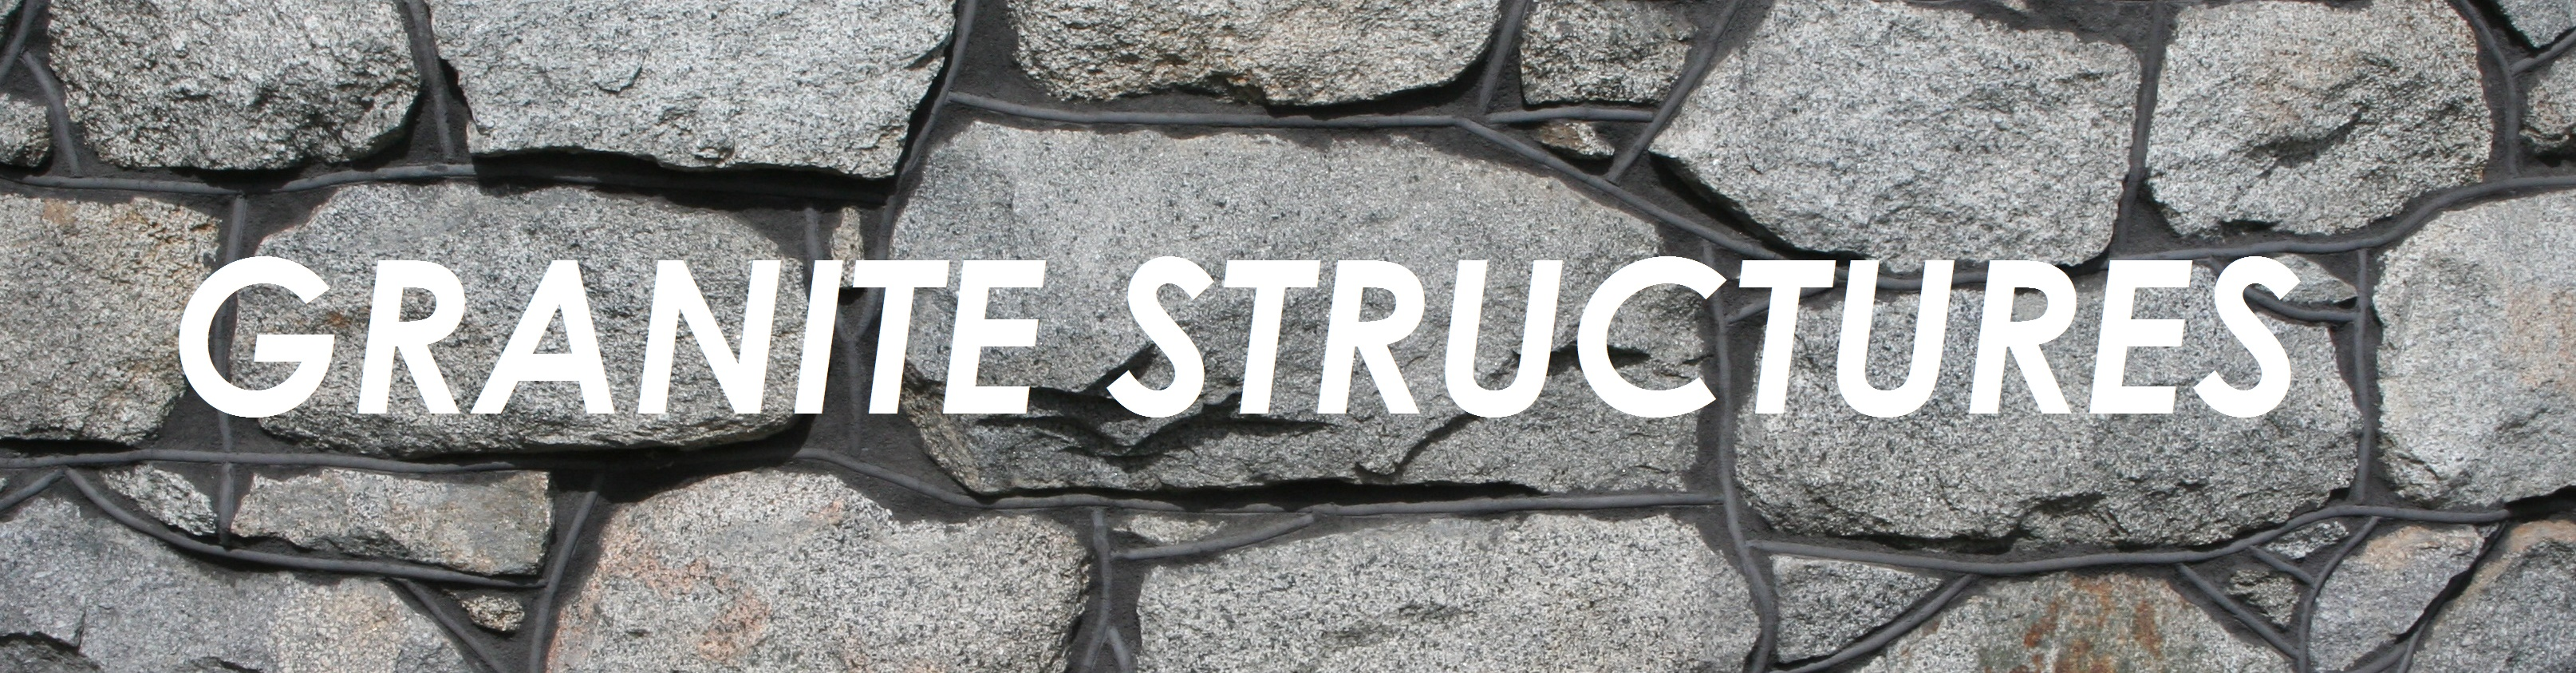 Granite Header Text